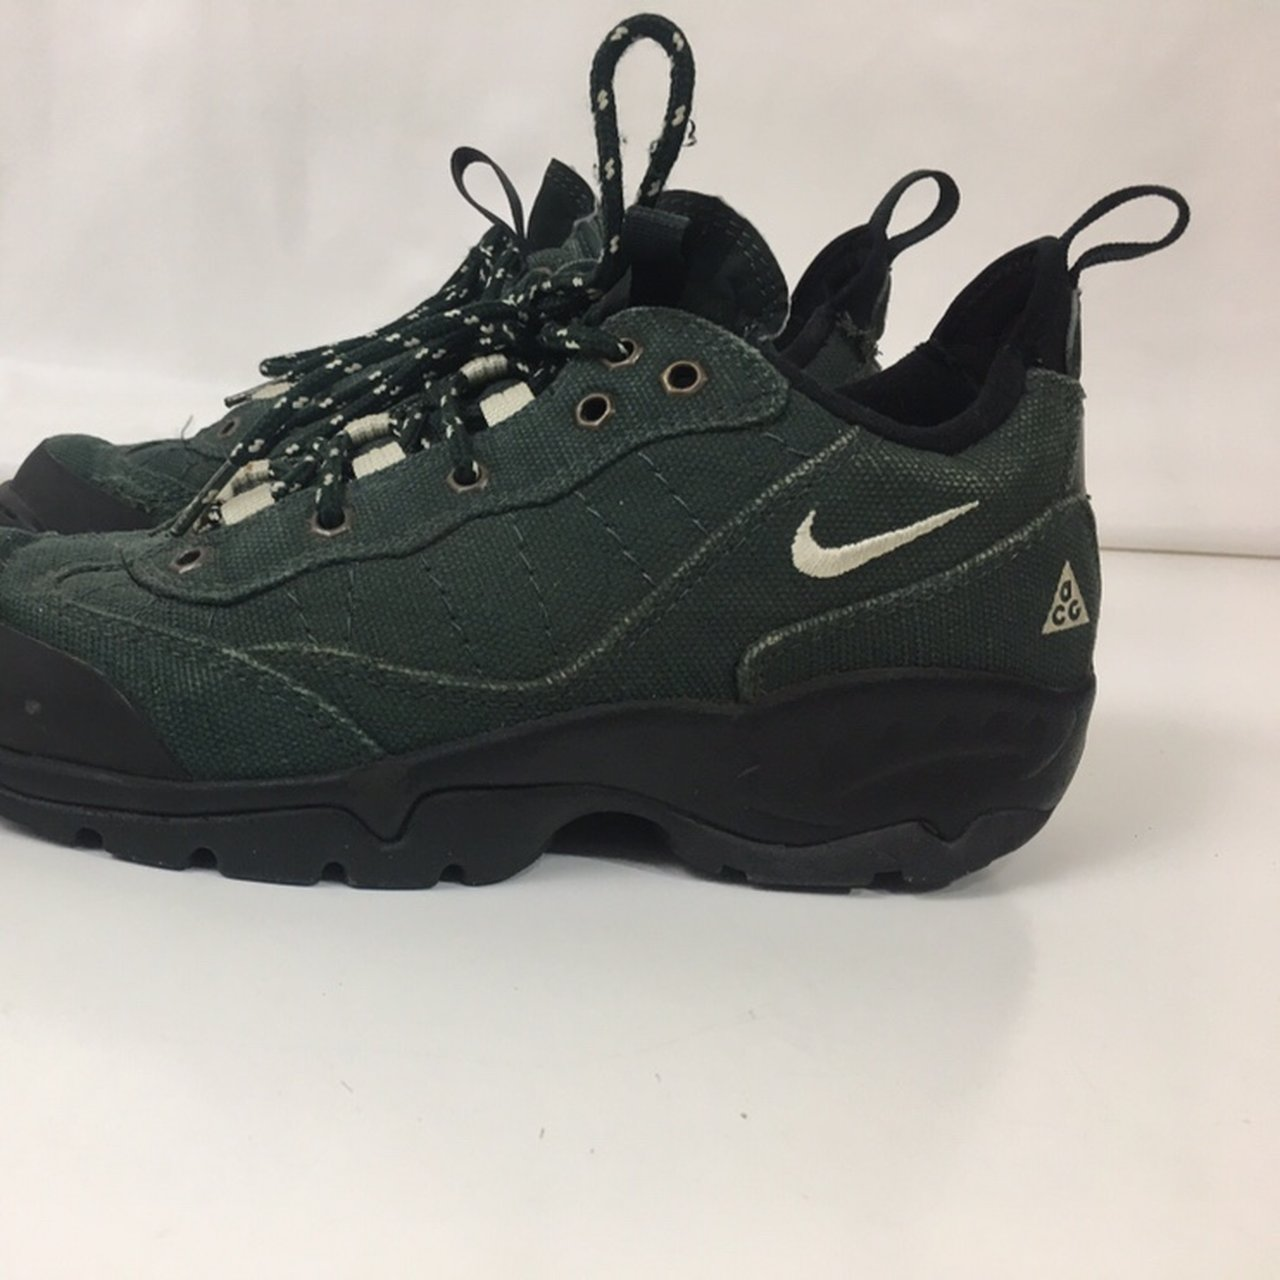 d3f33d763a8 Vintage Nike ACG Trail Running shoes Green Size 9 Good pre - Depop